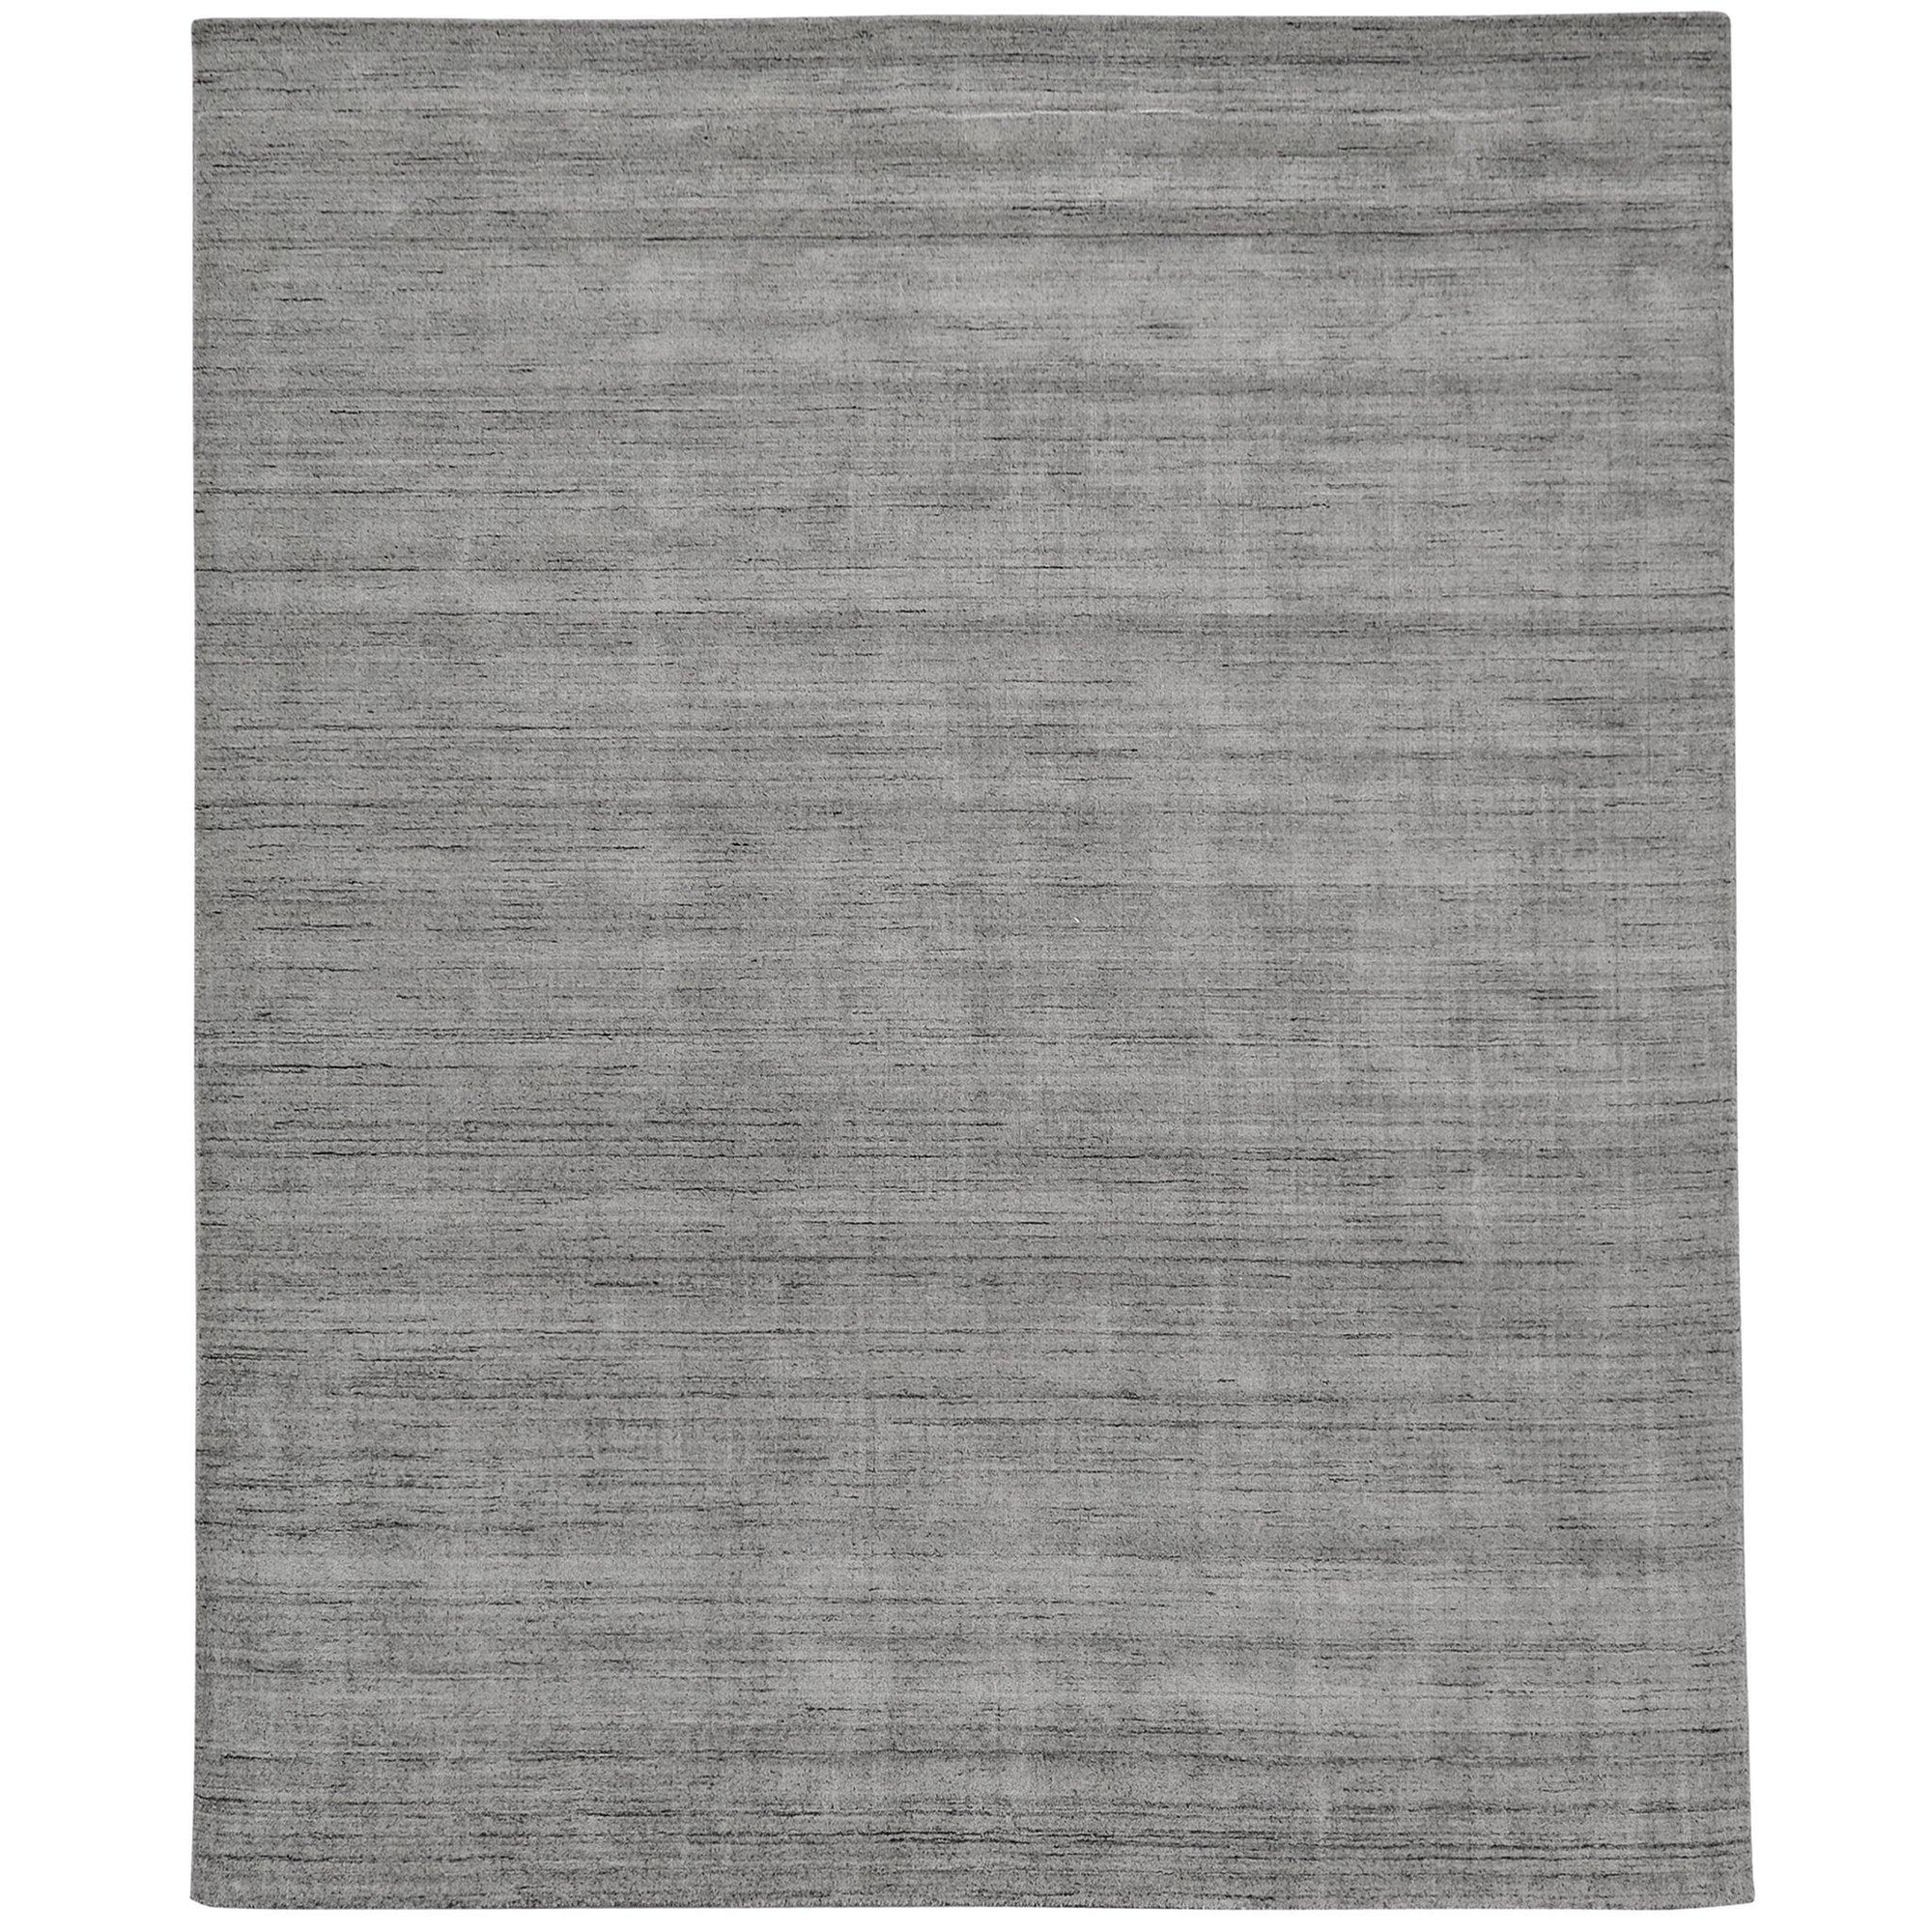 Contemporary Solid Wool Rug 250cm x 300cm Persian-Rug | House-of-Haghi | NewMarket | Auckland | NZ | Handmade Persian Rugs | Hand Knotted Persian Rugs